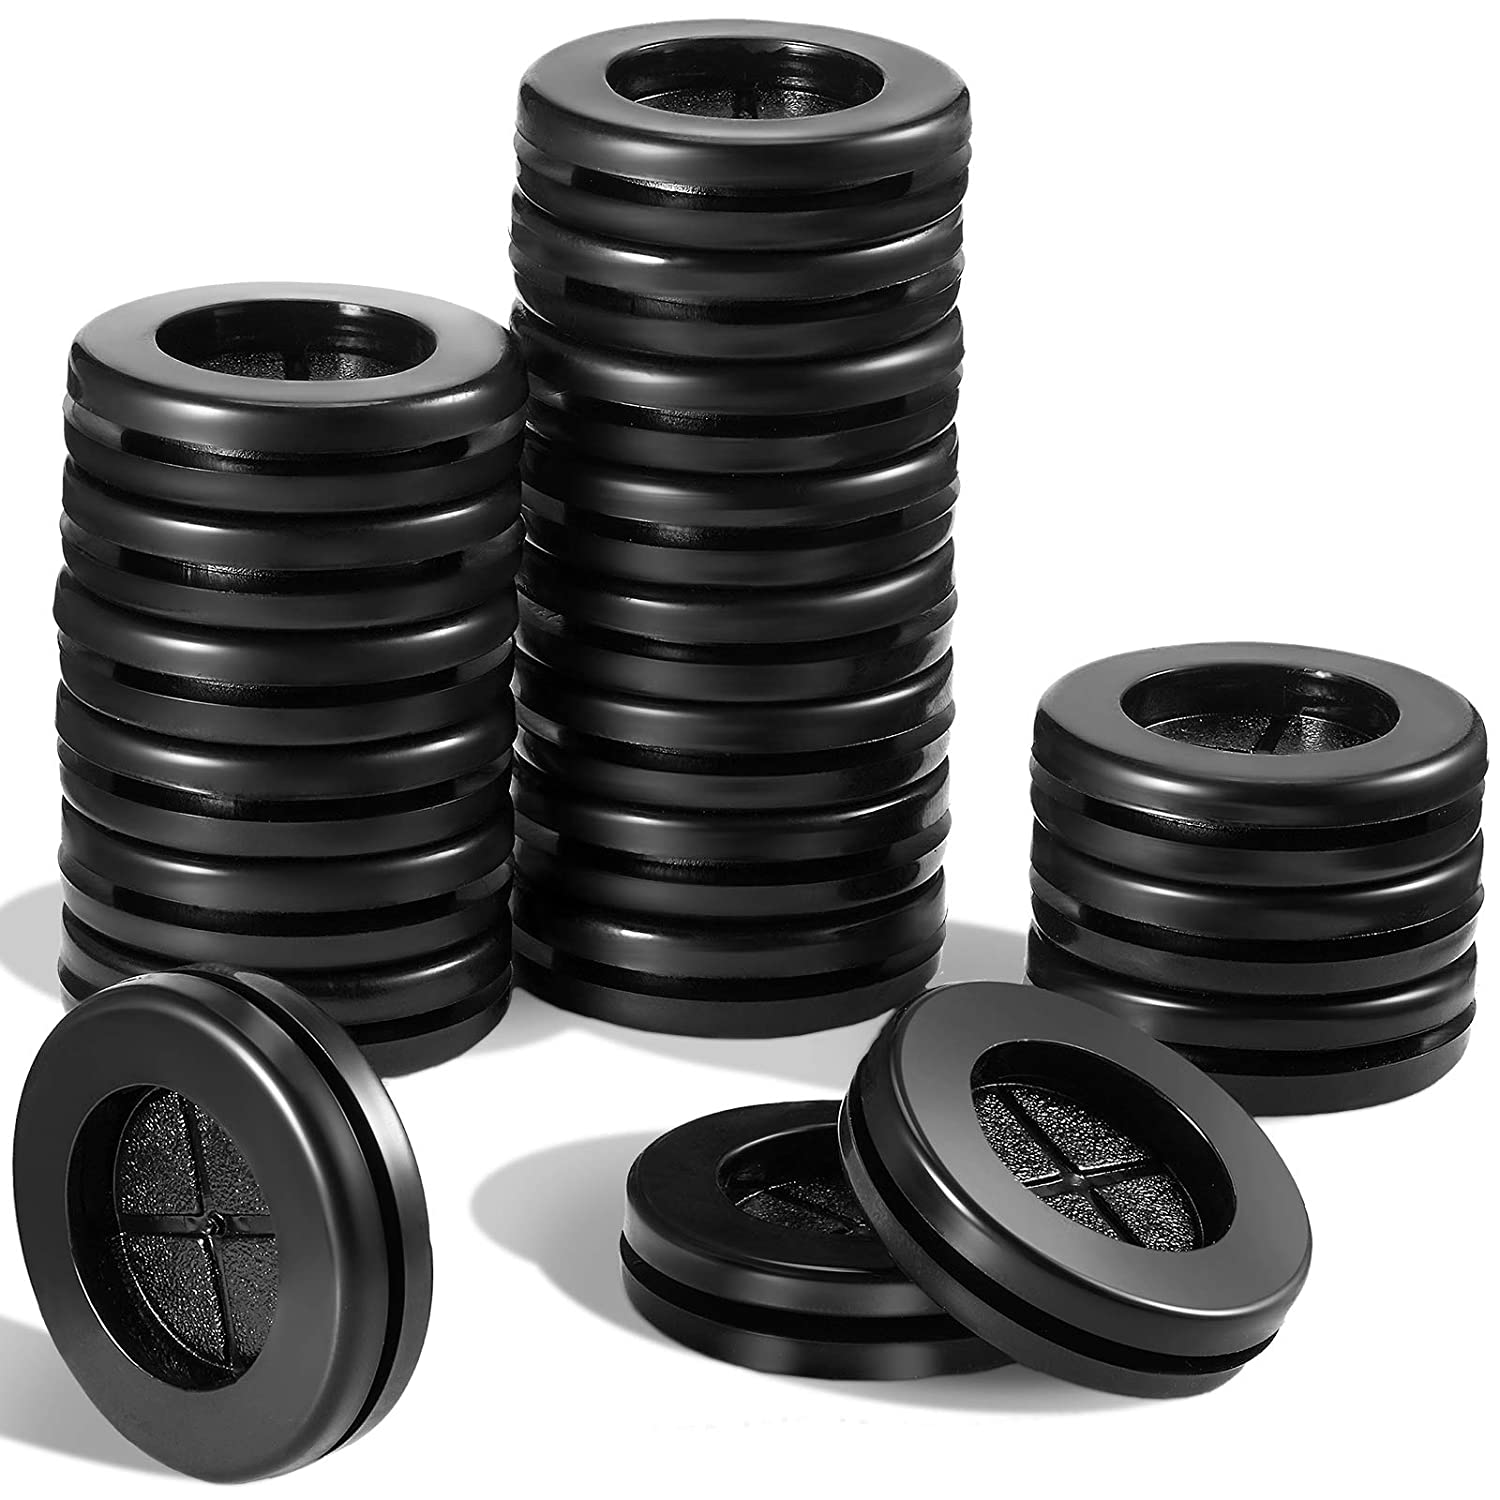 50 Pieces Double-Sided Rubber Grommet Wire Protection Grommets, 25/32 Inch Inside Diameter 1 Inch Drill Hole Plug Synthetic Rubber Grommets for Firewall Plug